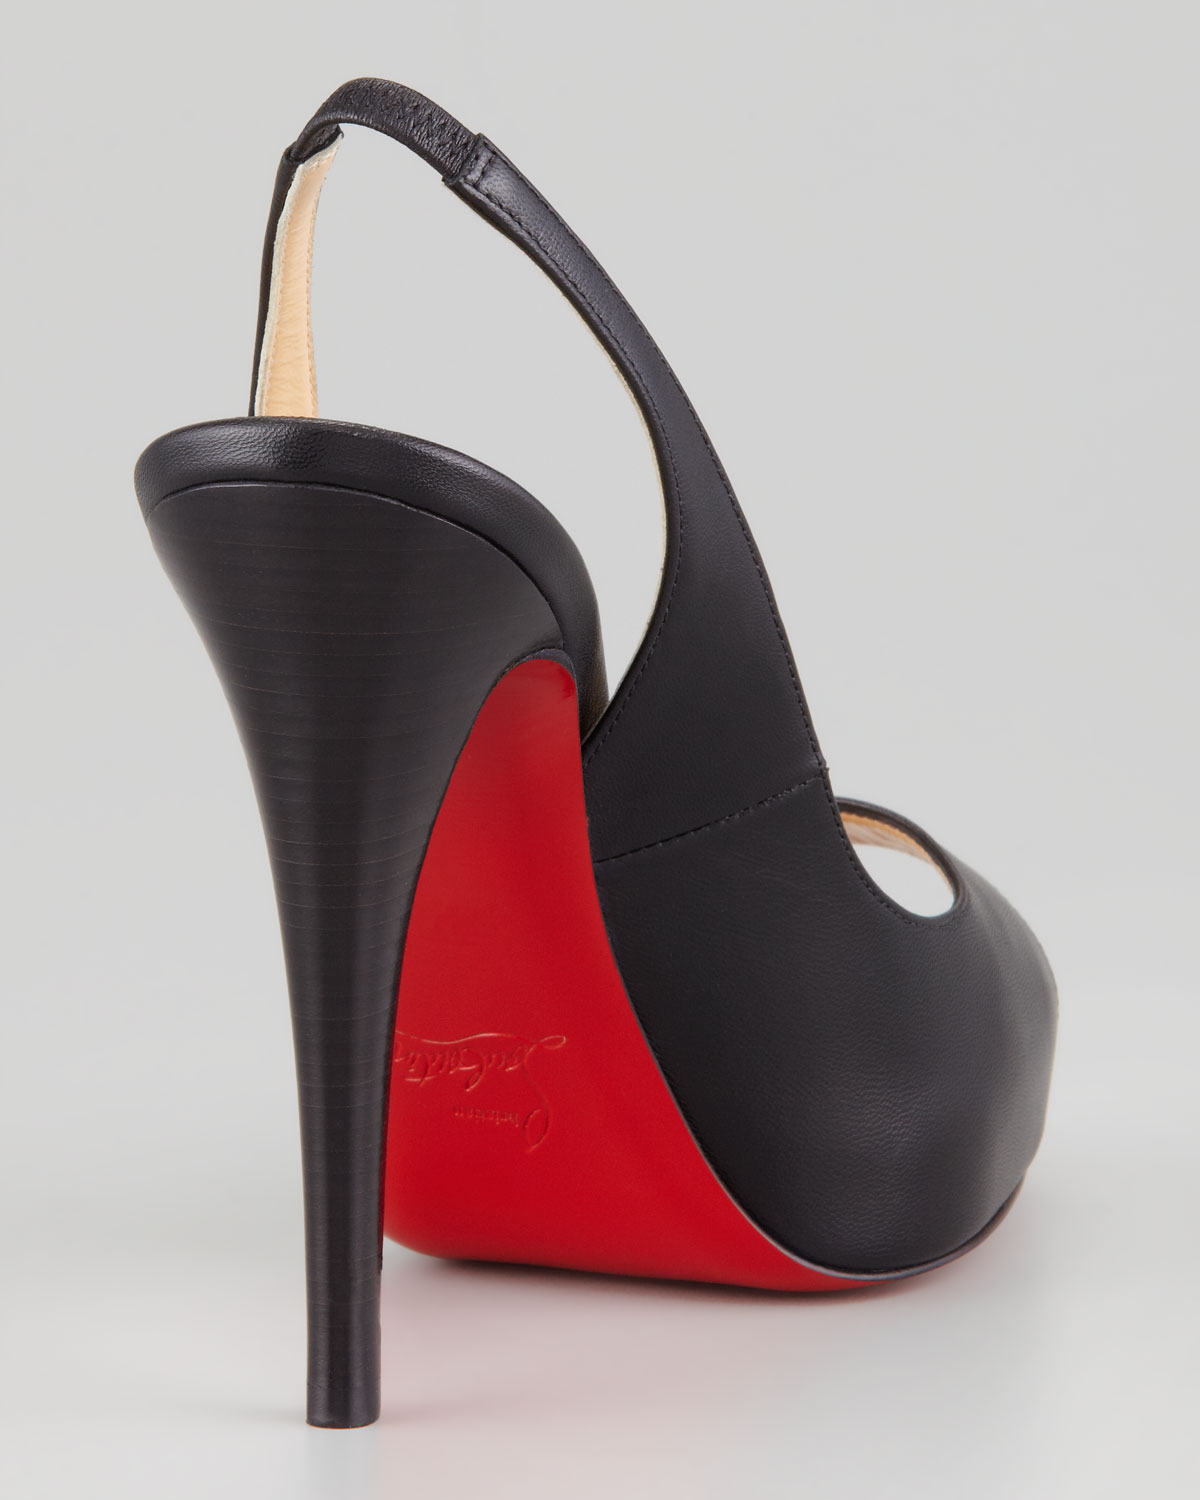 584635cc040 Lyst - Christian Louboutin No Prive Leather Slingback Red Sole Pump ...